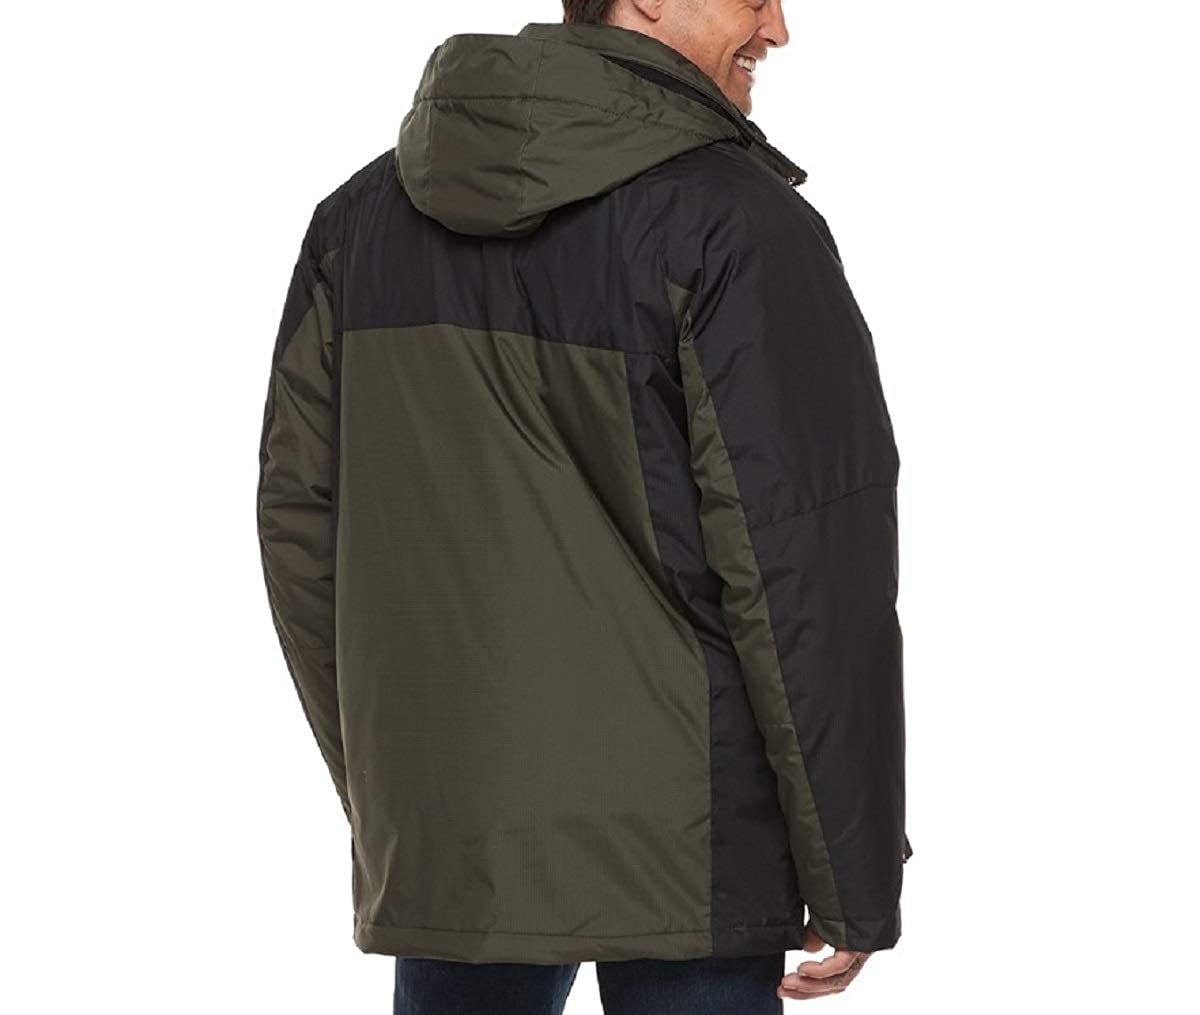 Black Charcoal, Large IZOD Mens 3-in-1 Hooded Systems Jacket